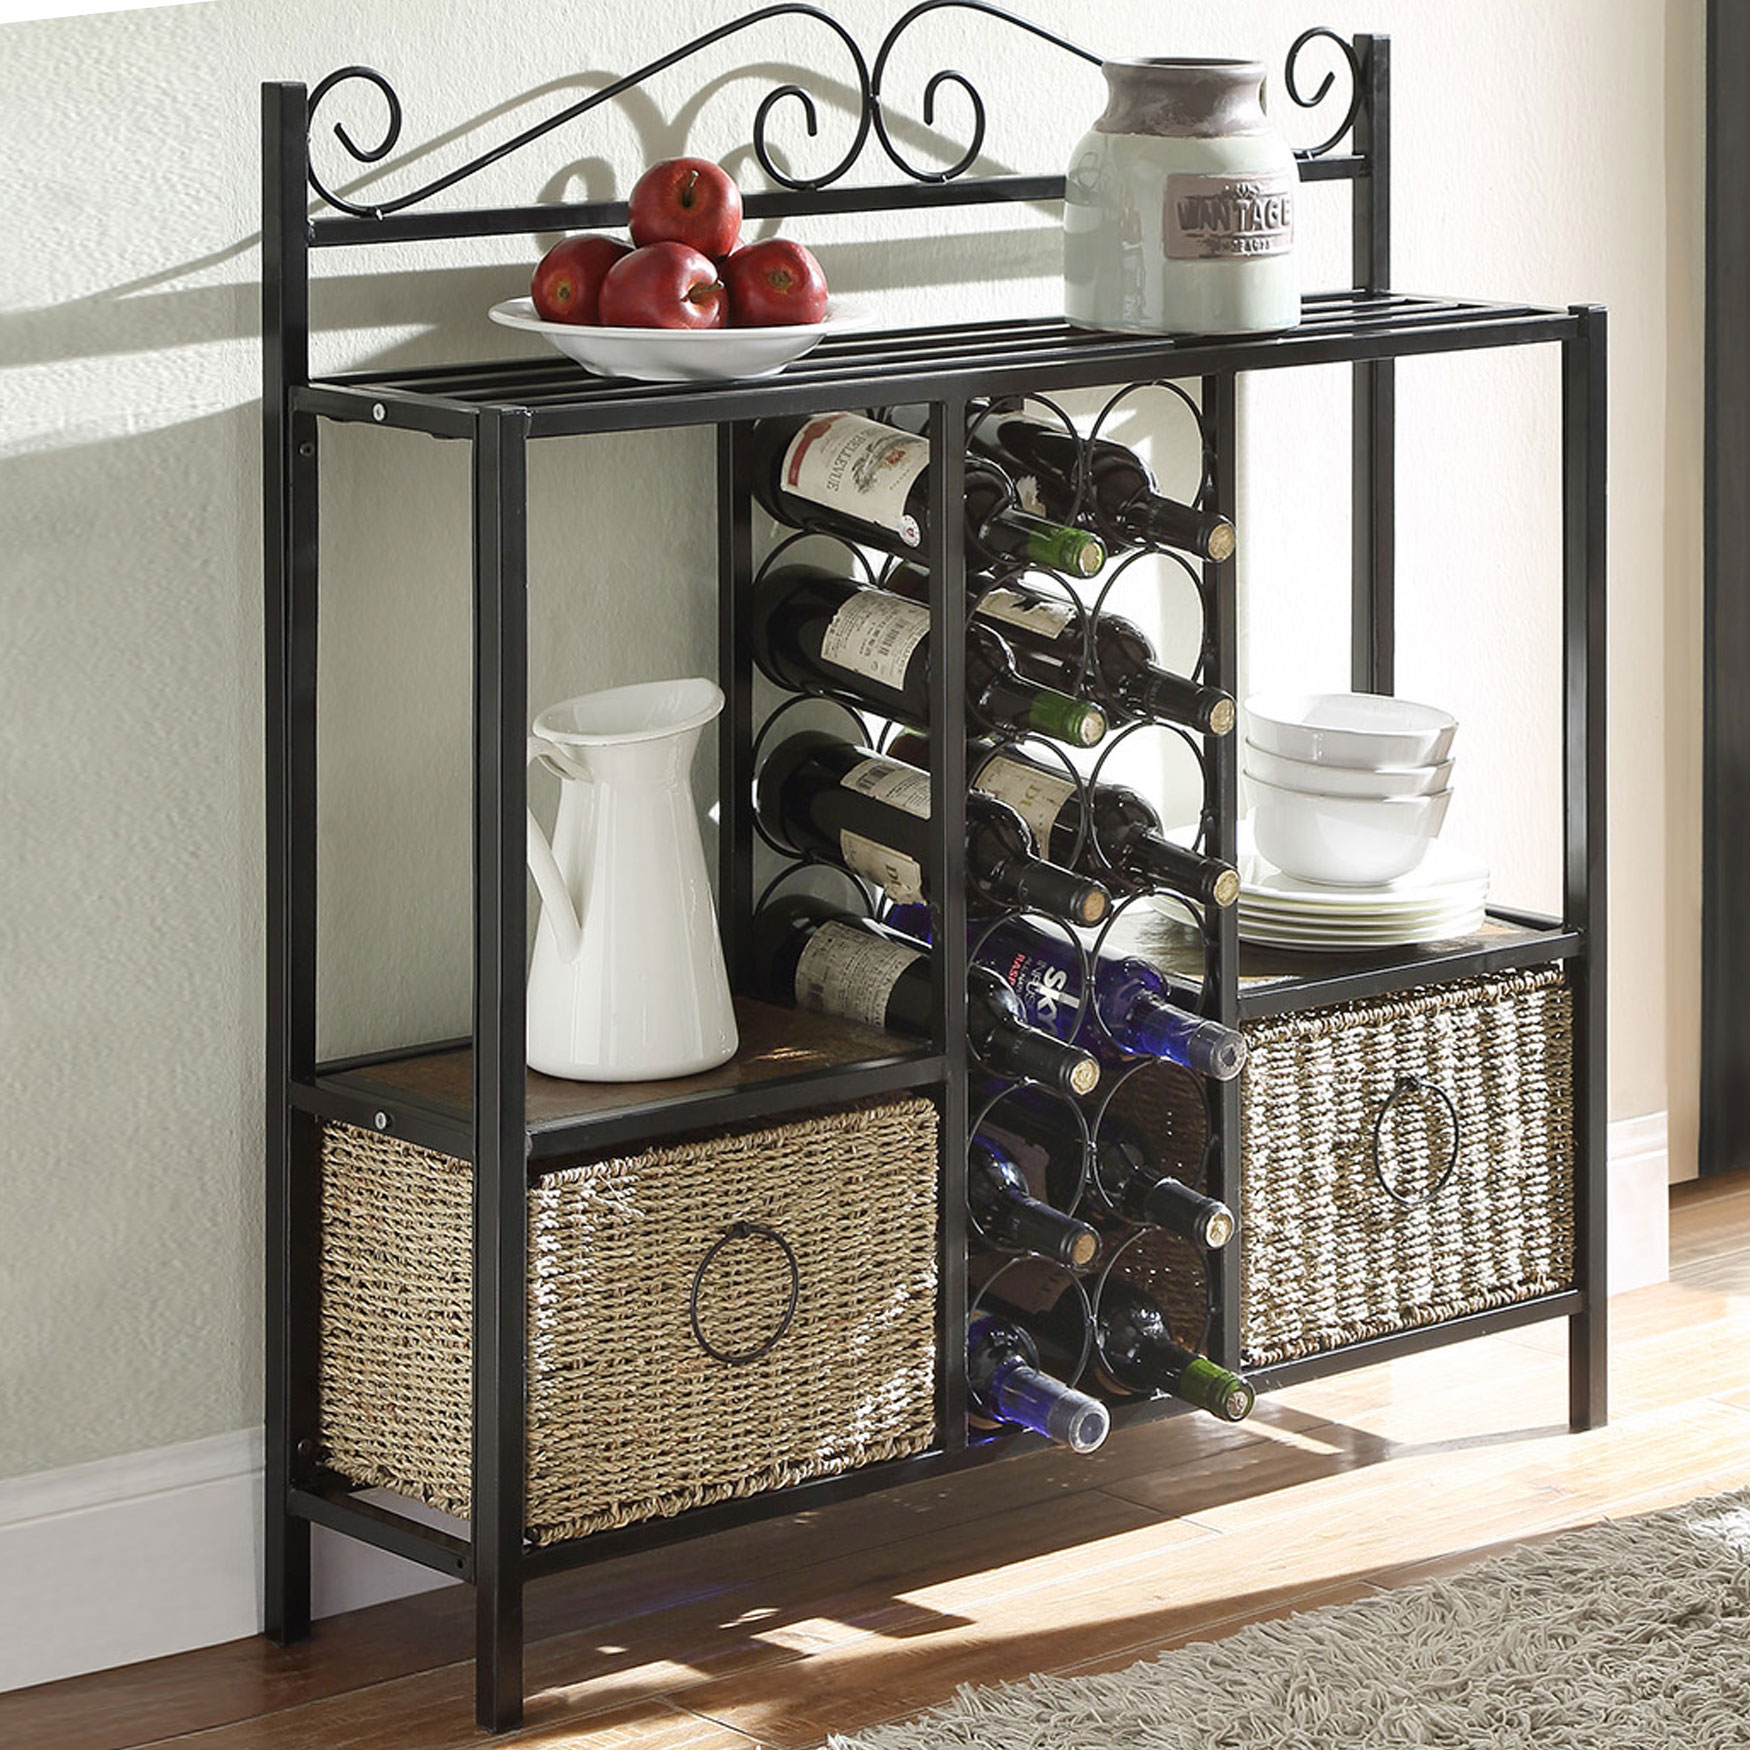 Storage Rack with Two Baskets, BLACK BROWN